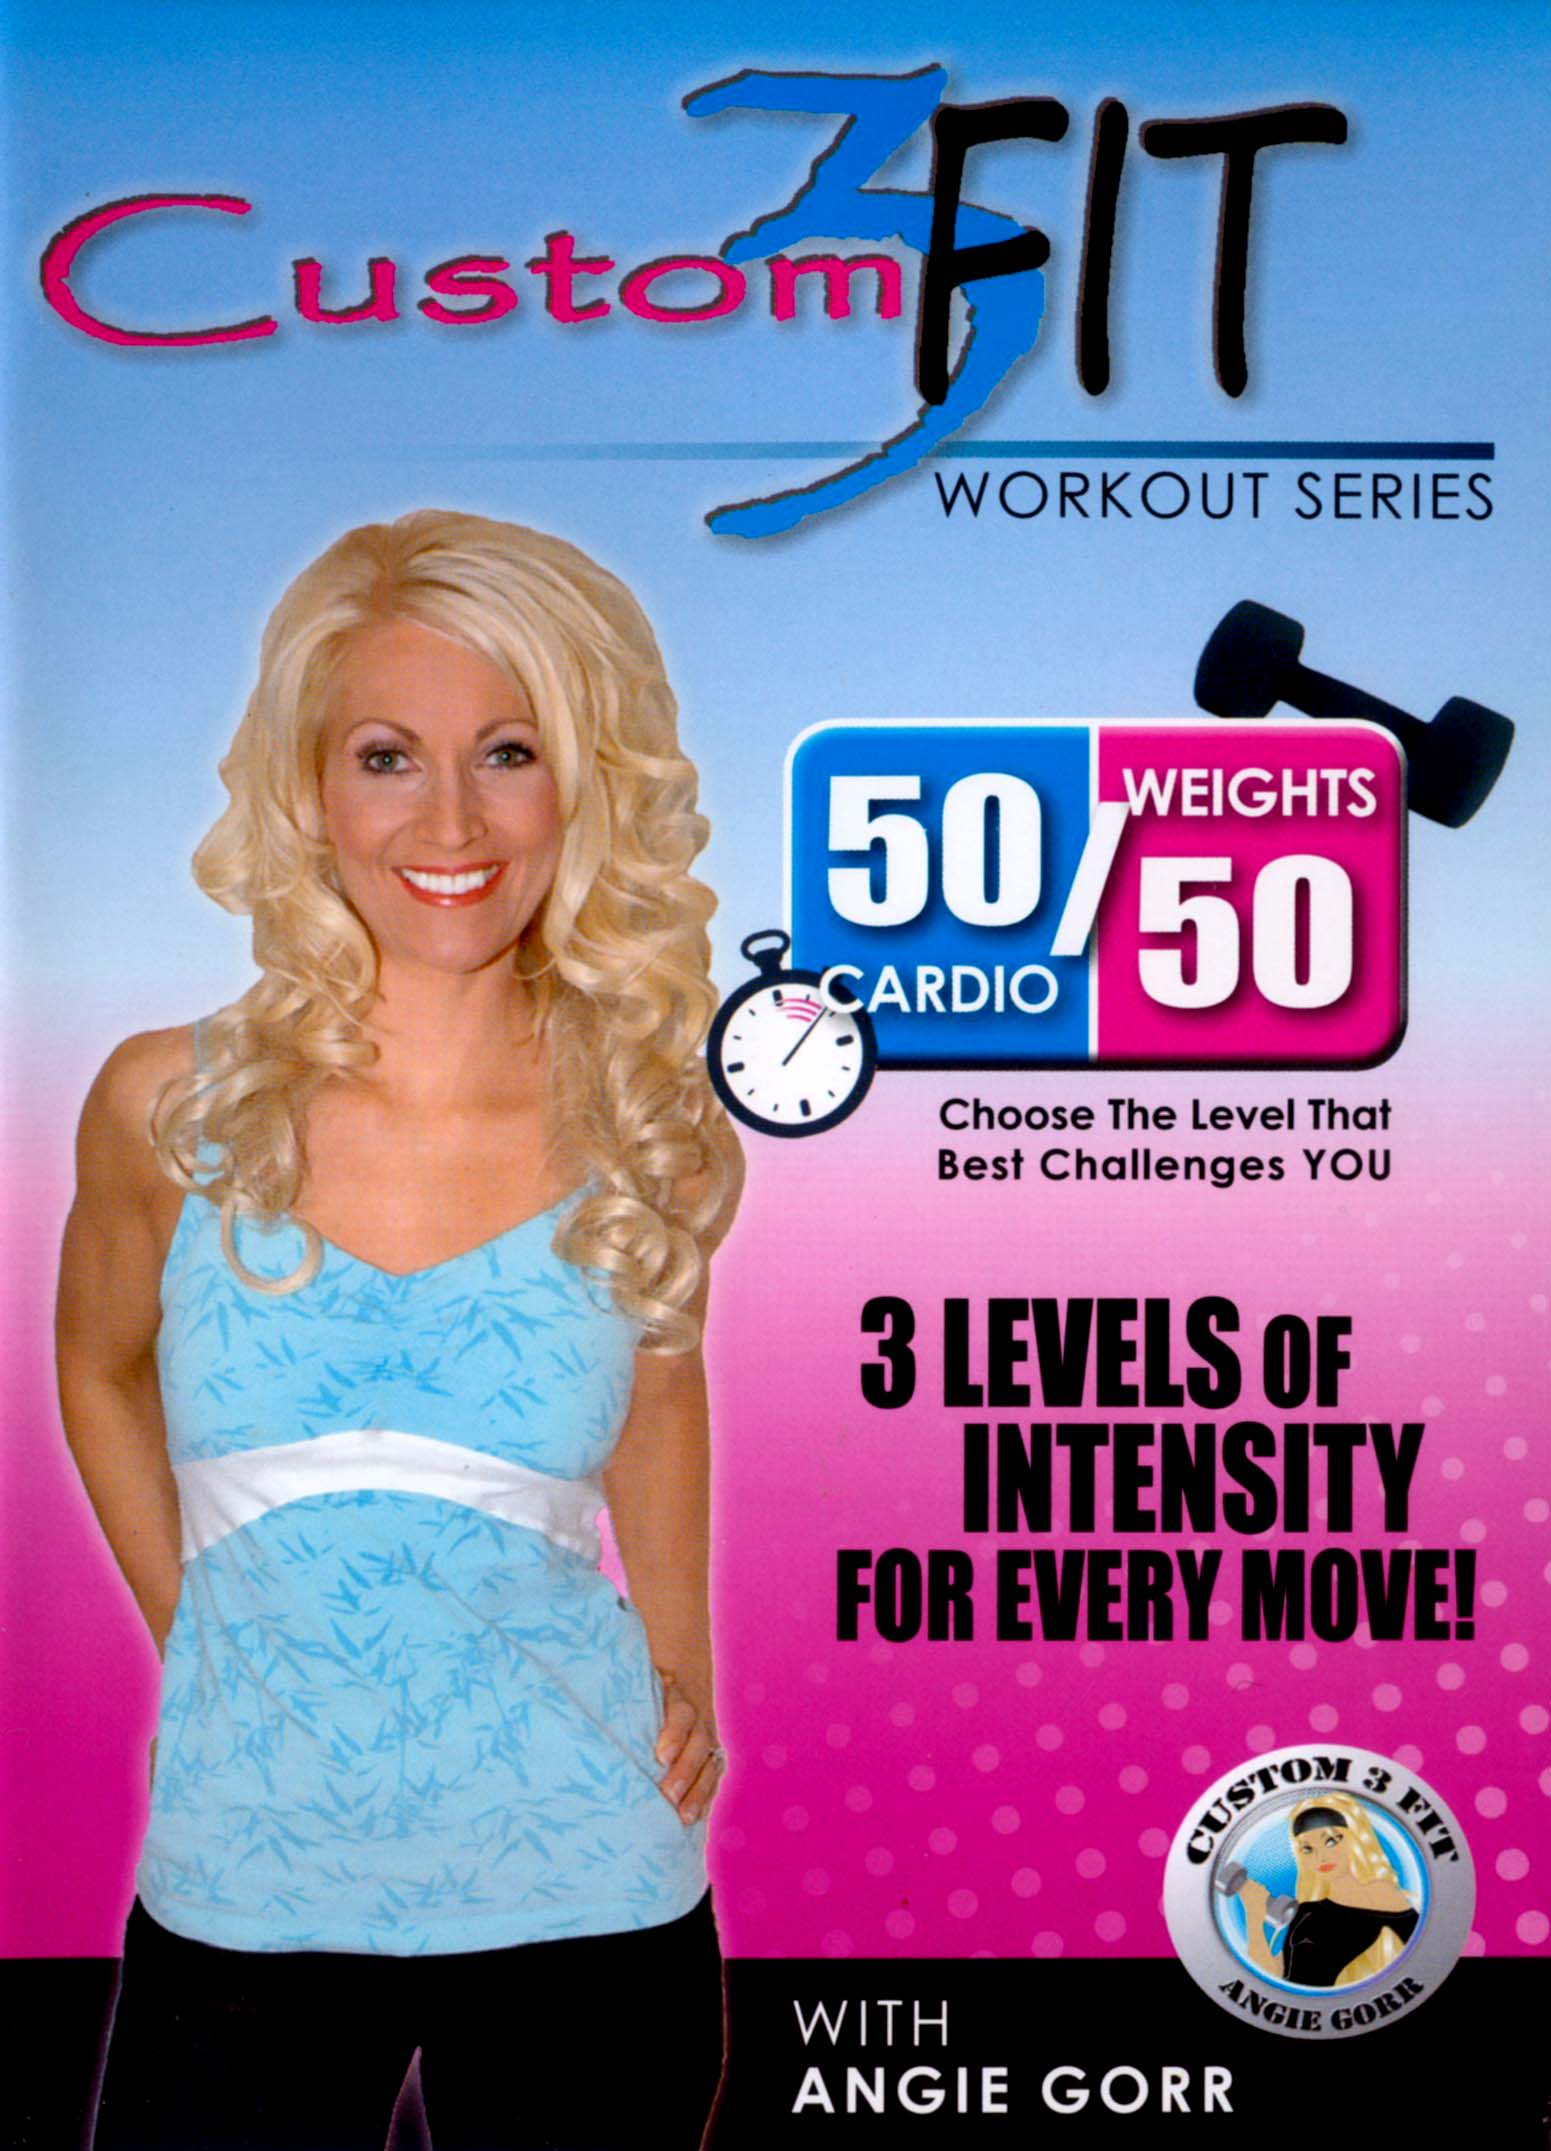 custom3 Fit: 50/50 Cardio and Weights